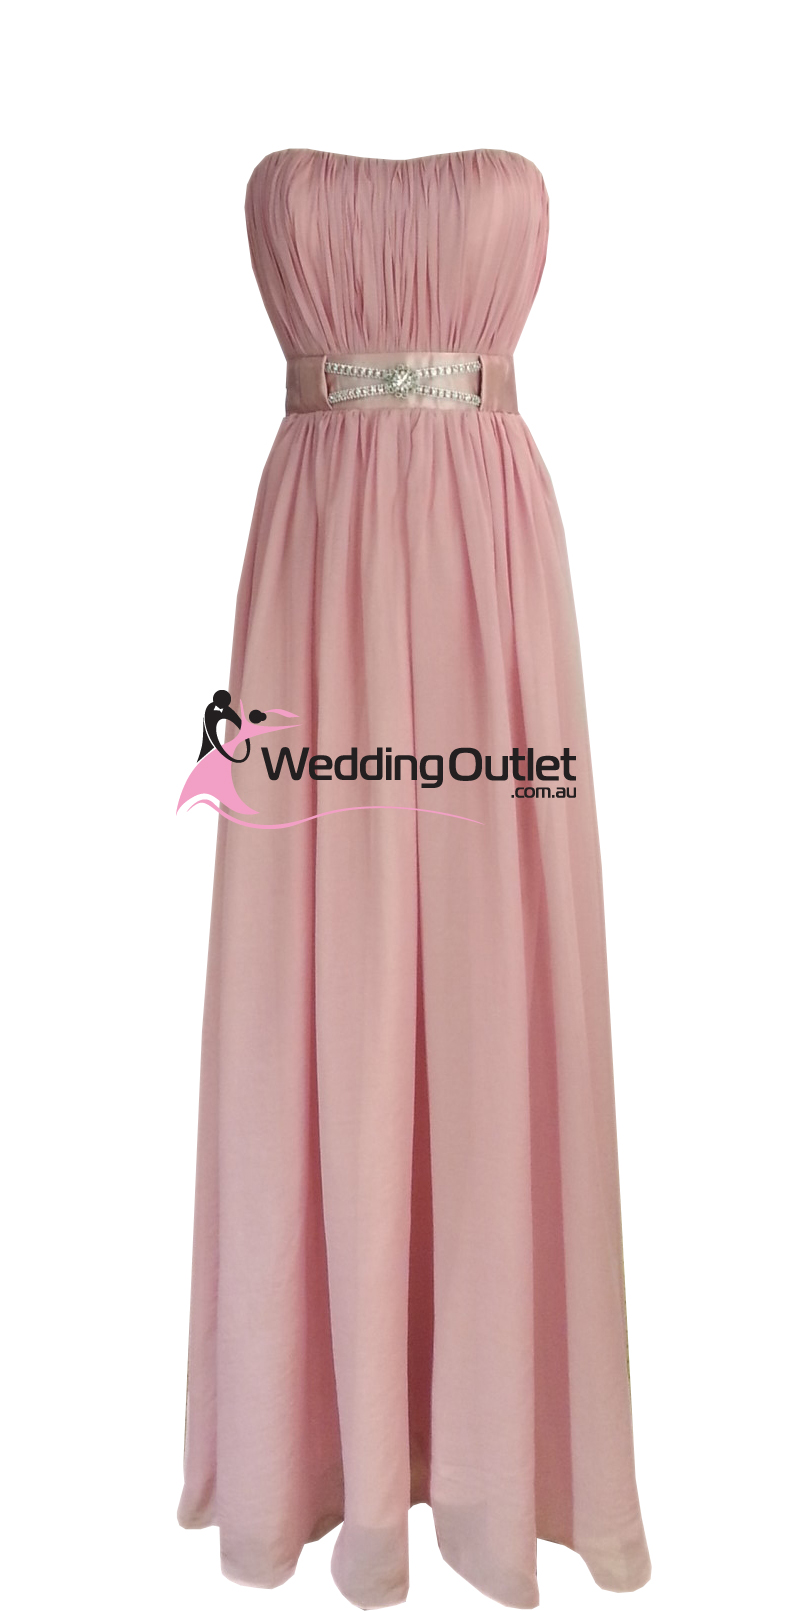 Dusty Pink Strapless Bridesmaid Dresses Style #V101 - WeddingOutlet ...